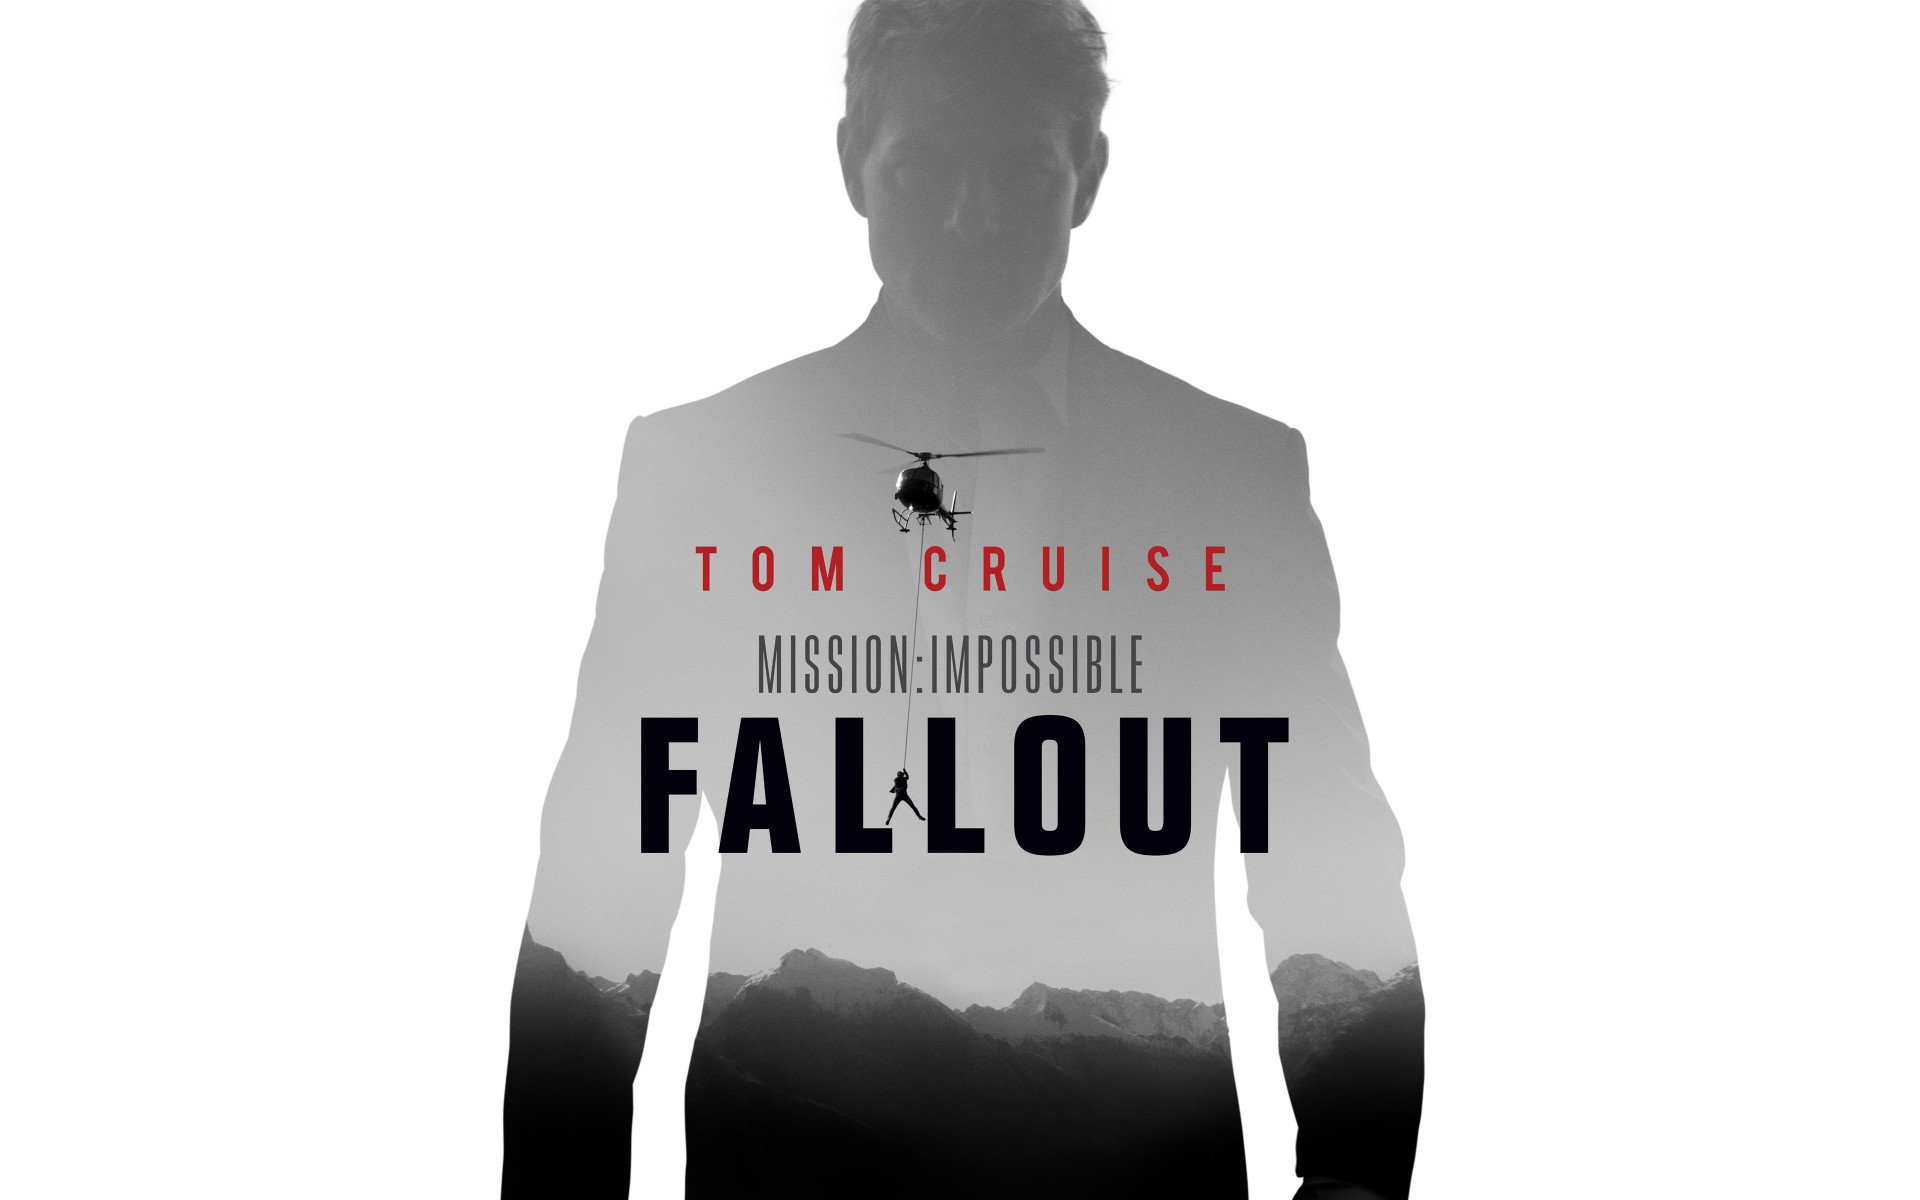 Tom Cruise Mission Impossible Fallout Poster 1920x1200